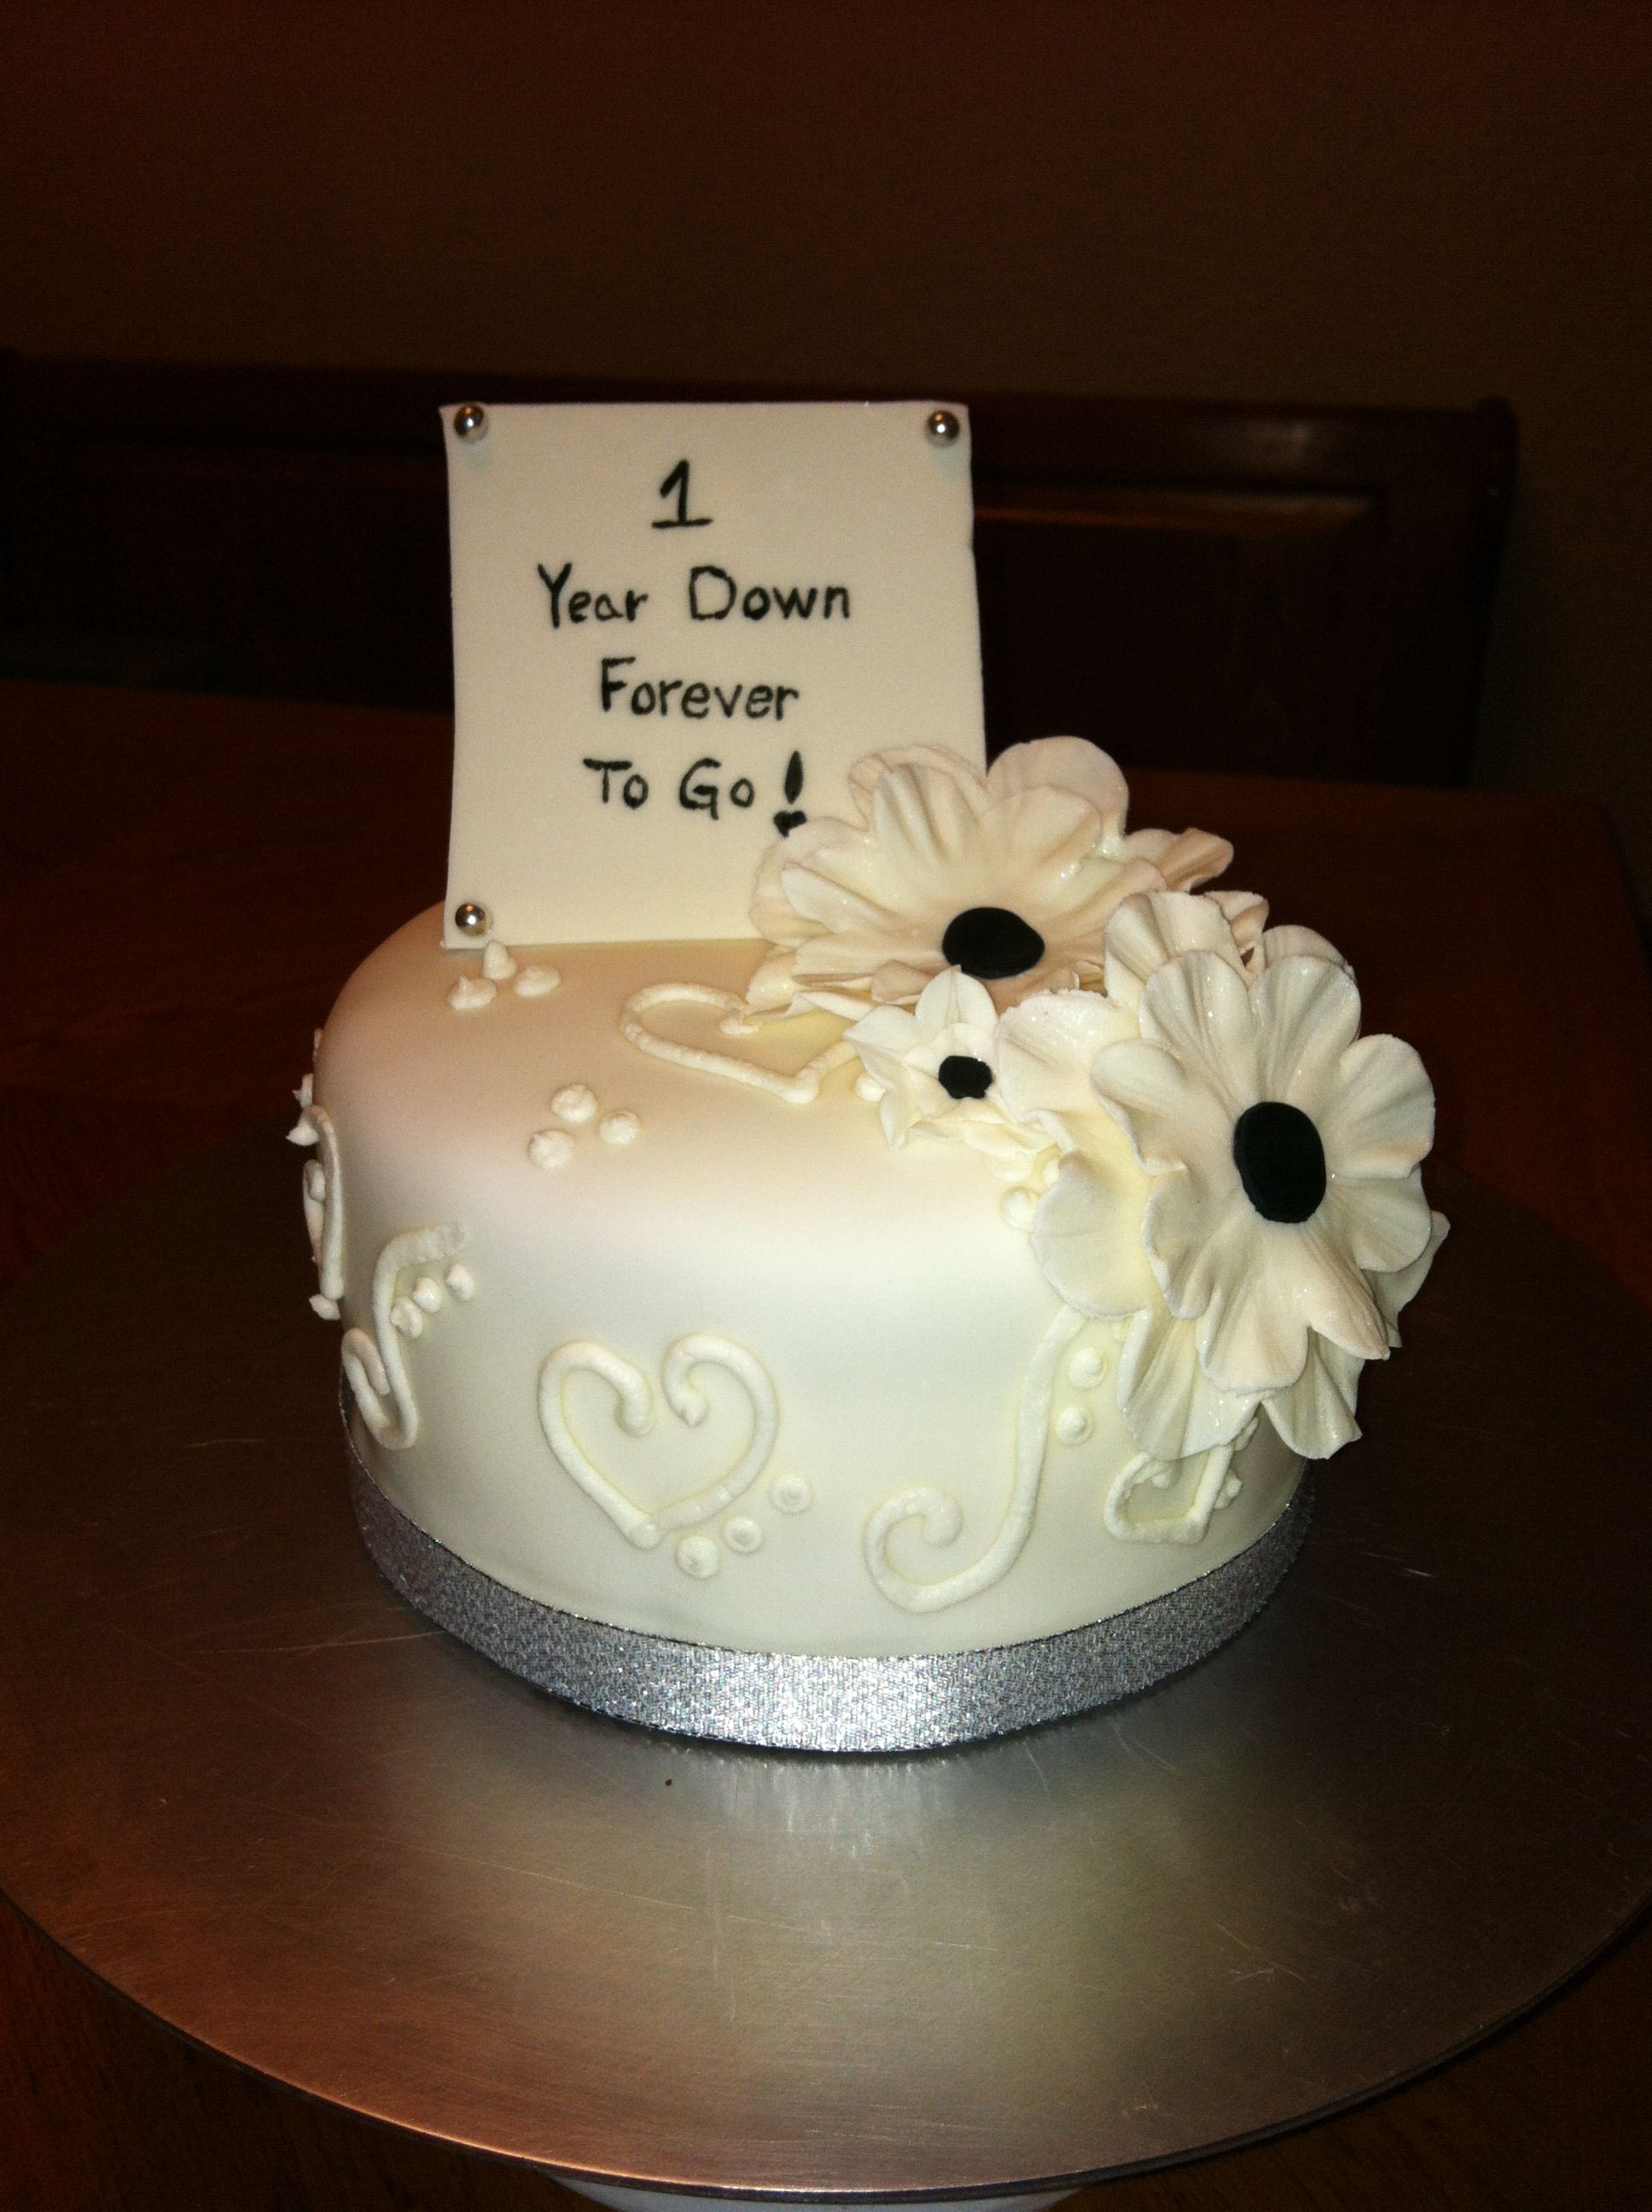 Cake Designs For First Anniversary : Happy 1st Anniversary Cake Ideas and Designs